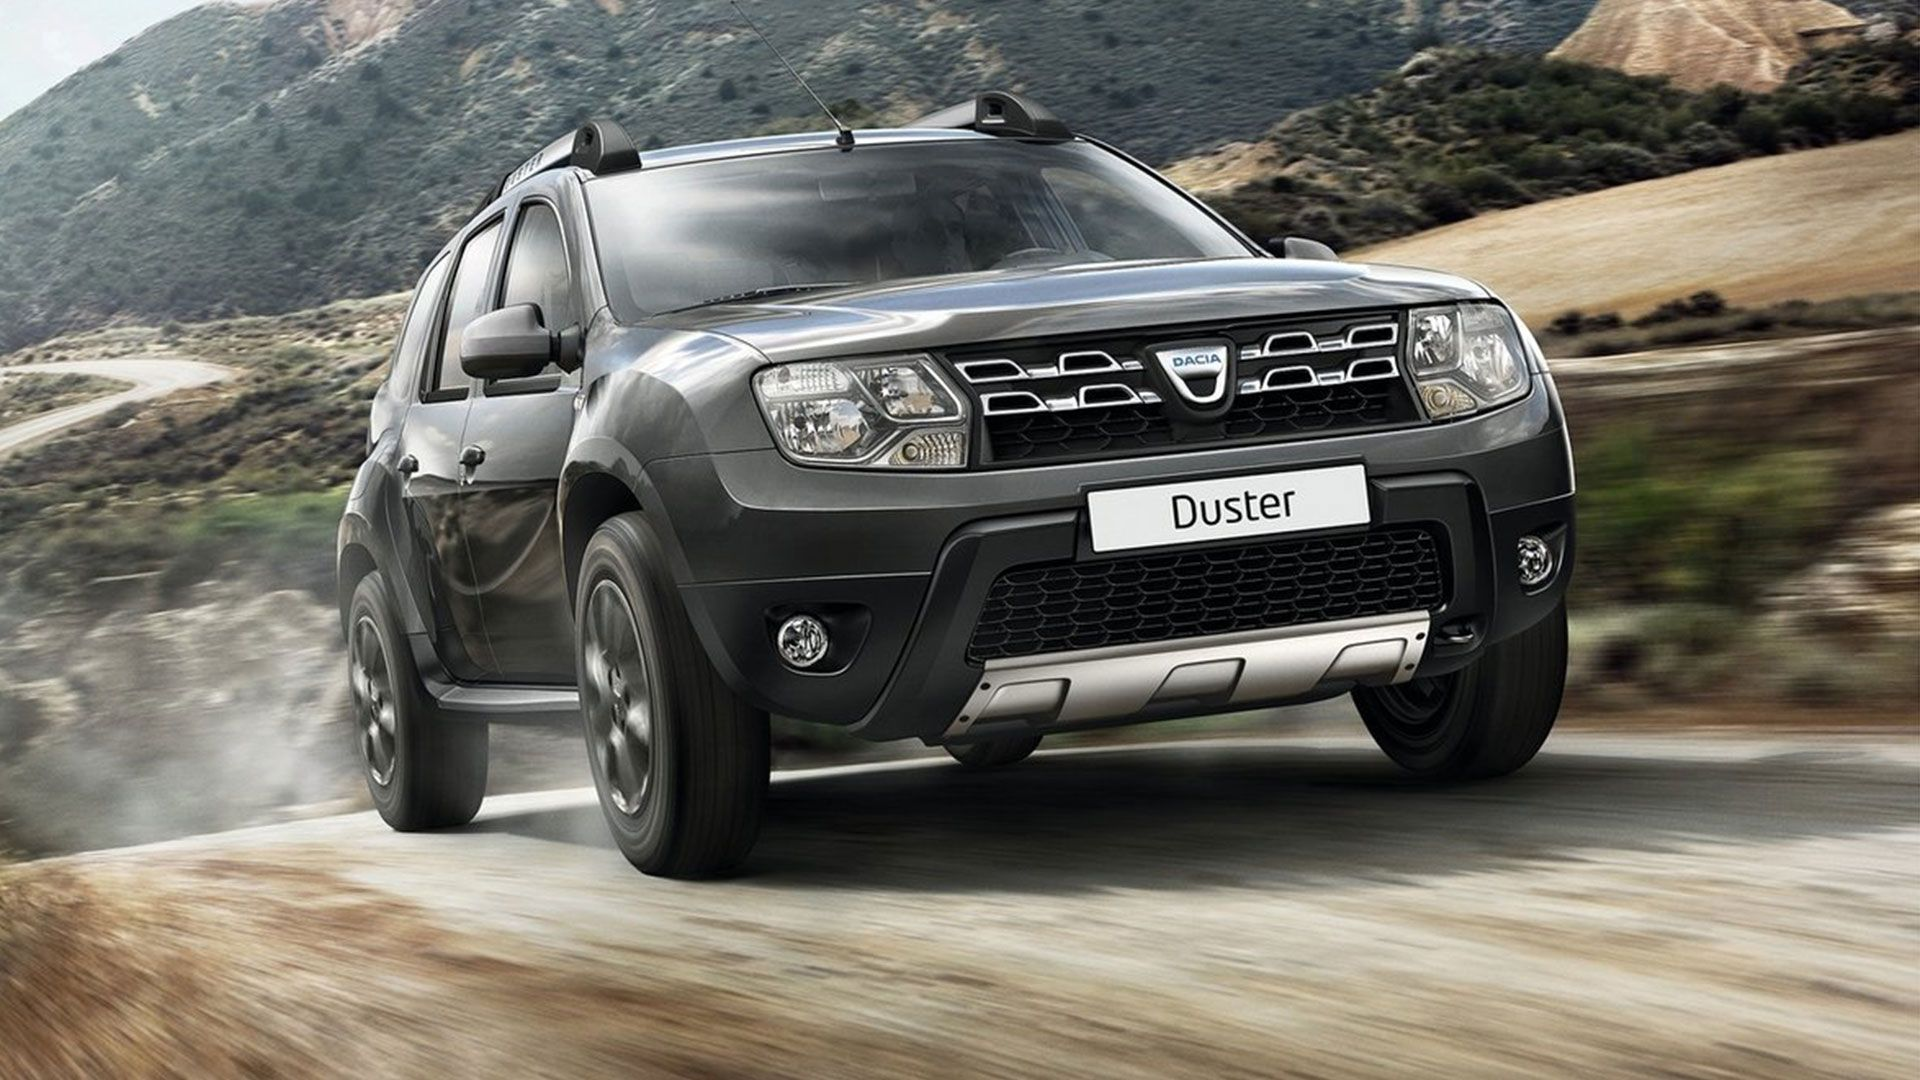 Download the latest 2014 renault duster hd wallpaper pictures from download the latest 2014 renault duster hd wallpaper pictures from wallpapers111 voltagebd Image collections